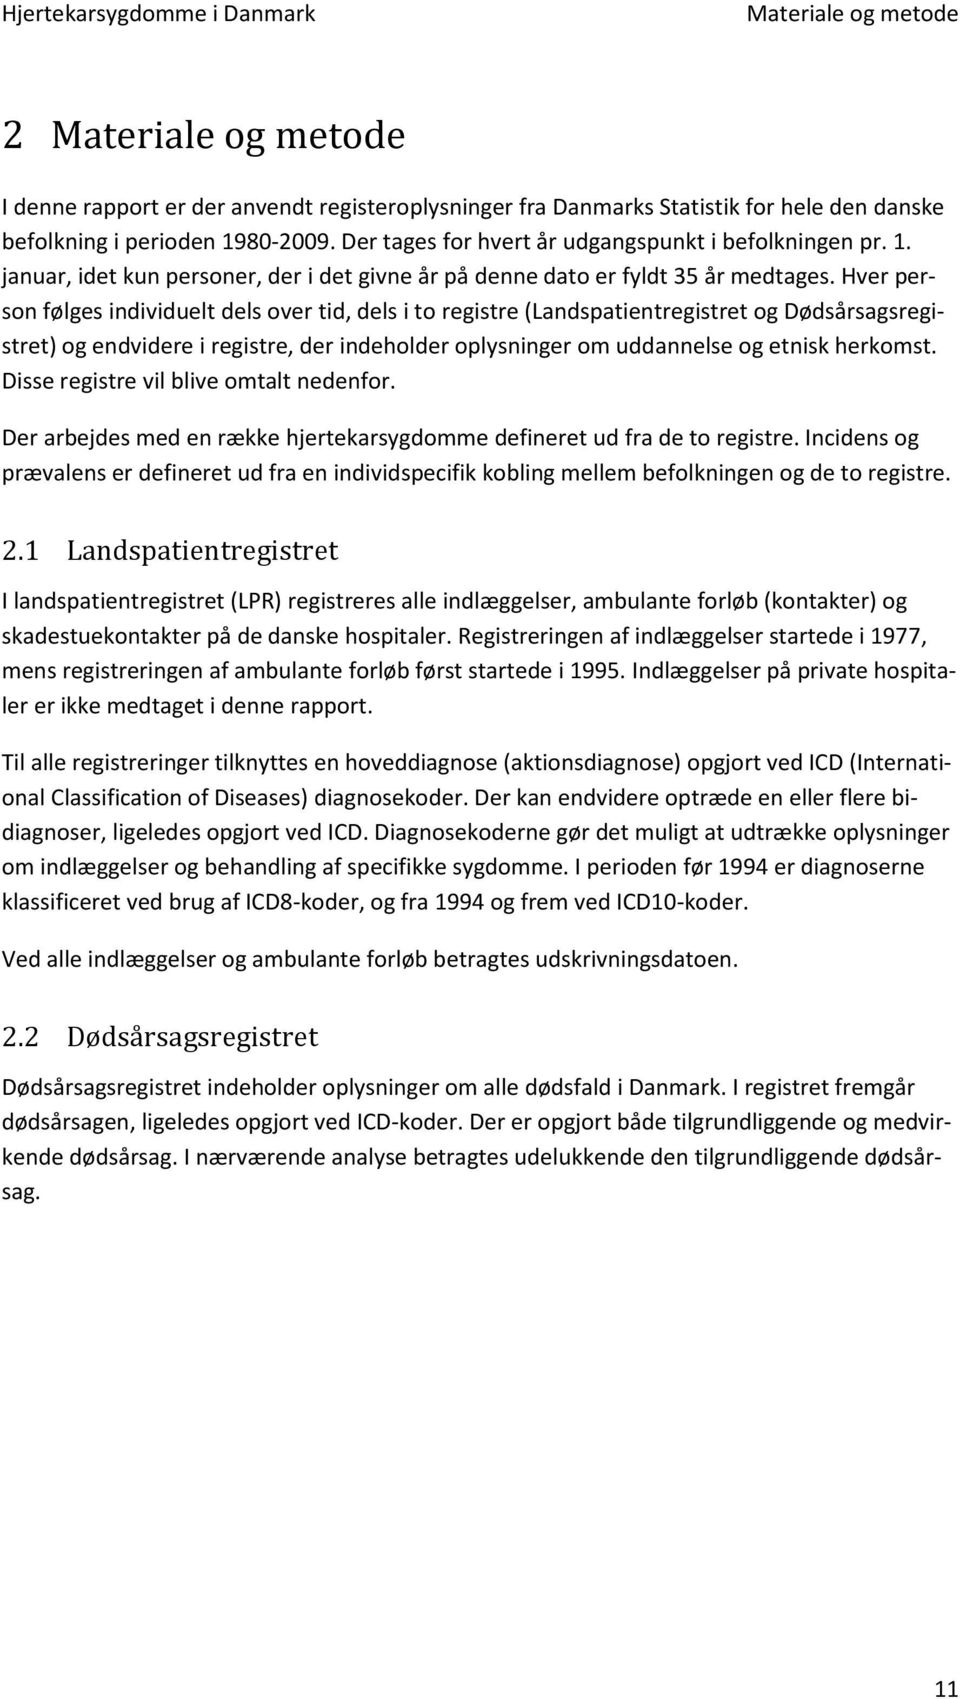 Hver person følges individuelt dels over tid, dels i to registre (Landspatientregistret og Dødsårsagsregistret) og endvidere i registre, der indeholder oplysninger om uddannelse og etnisk herkomst.